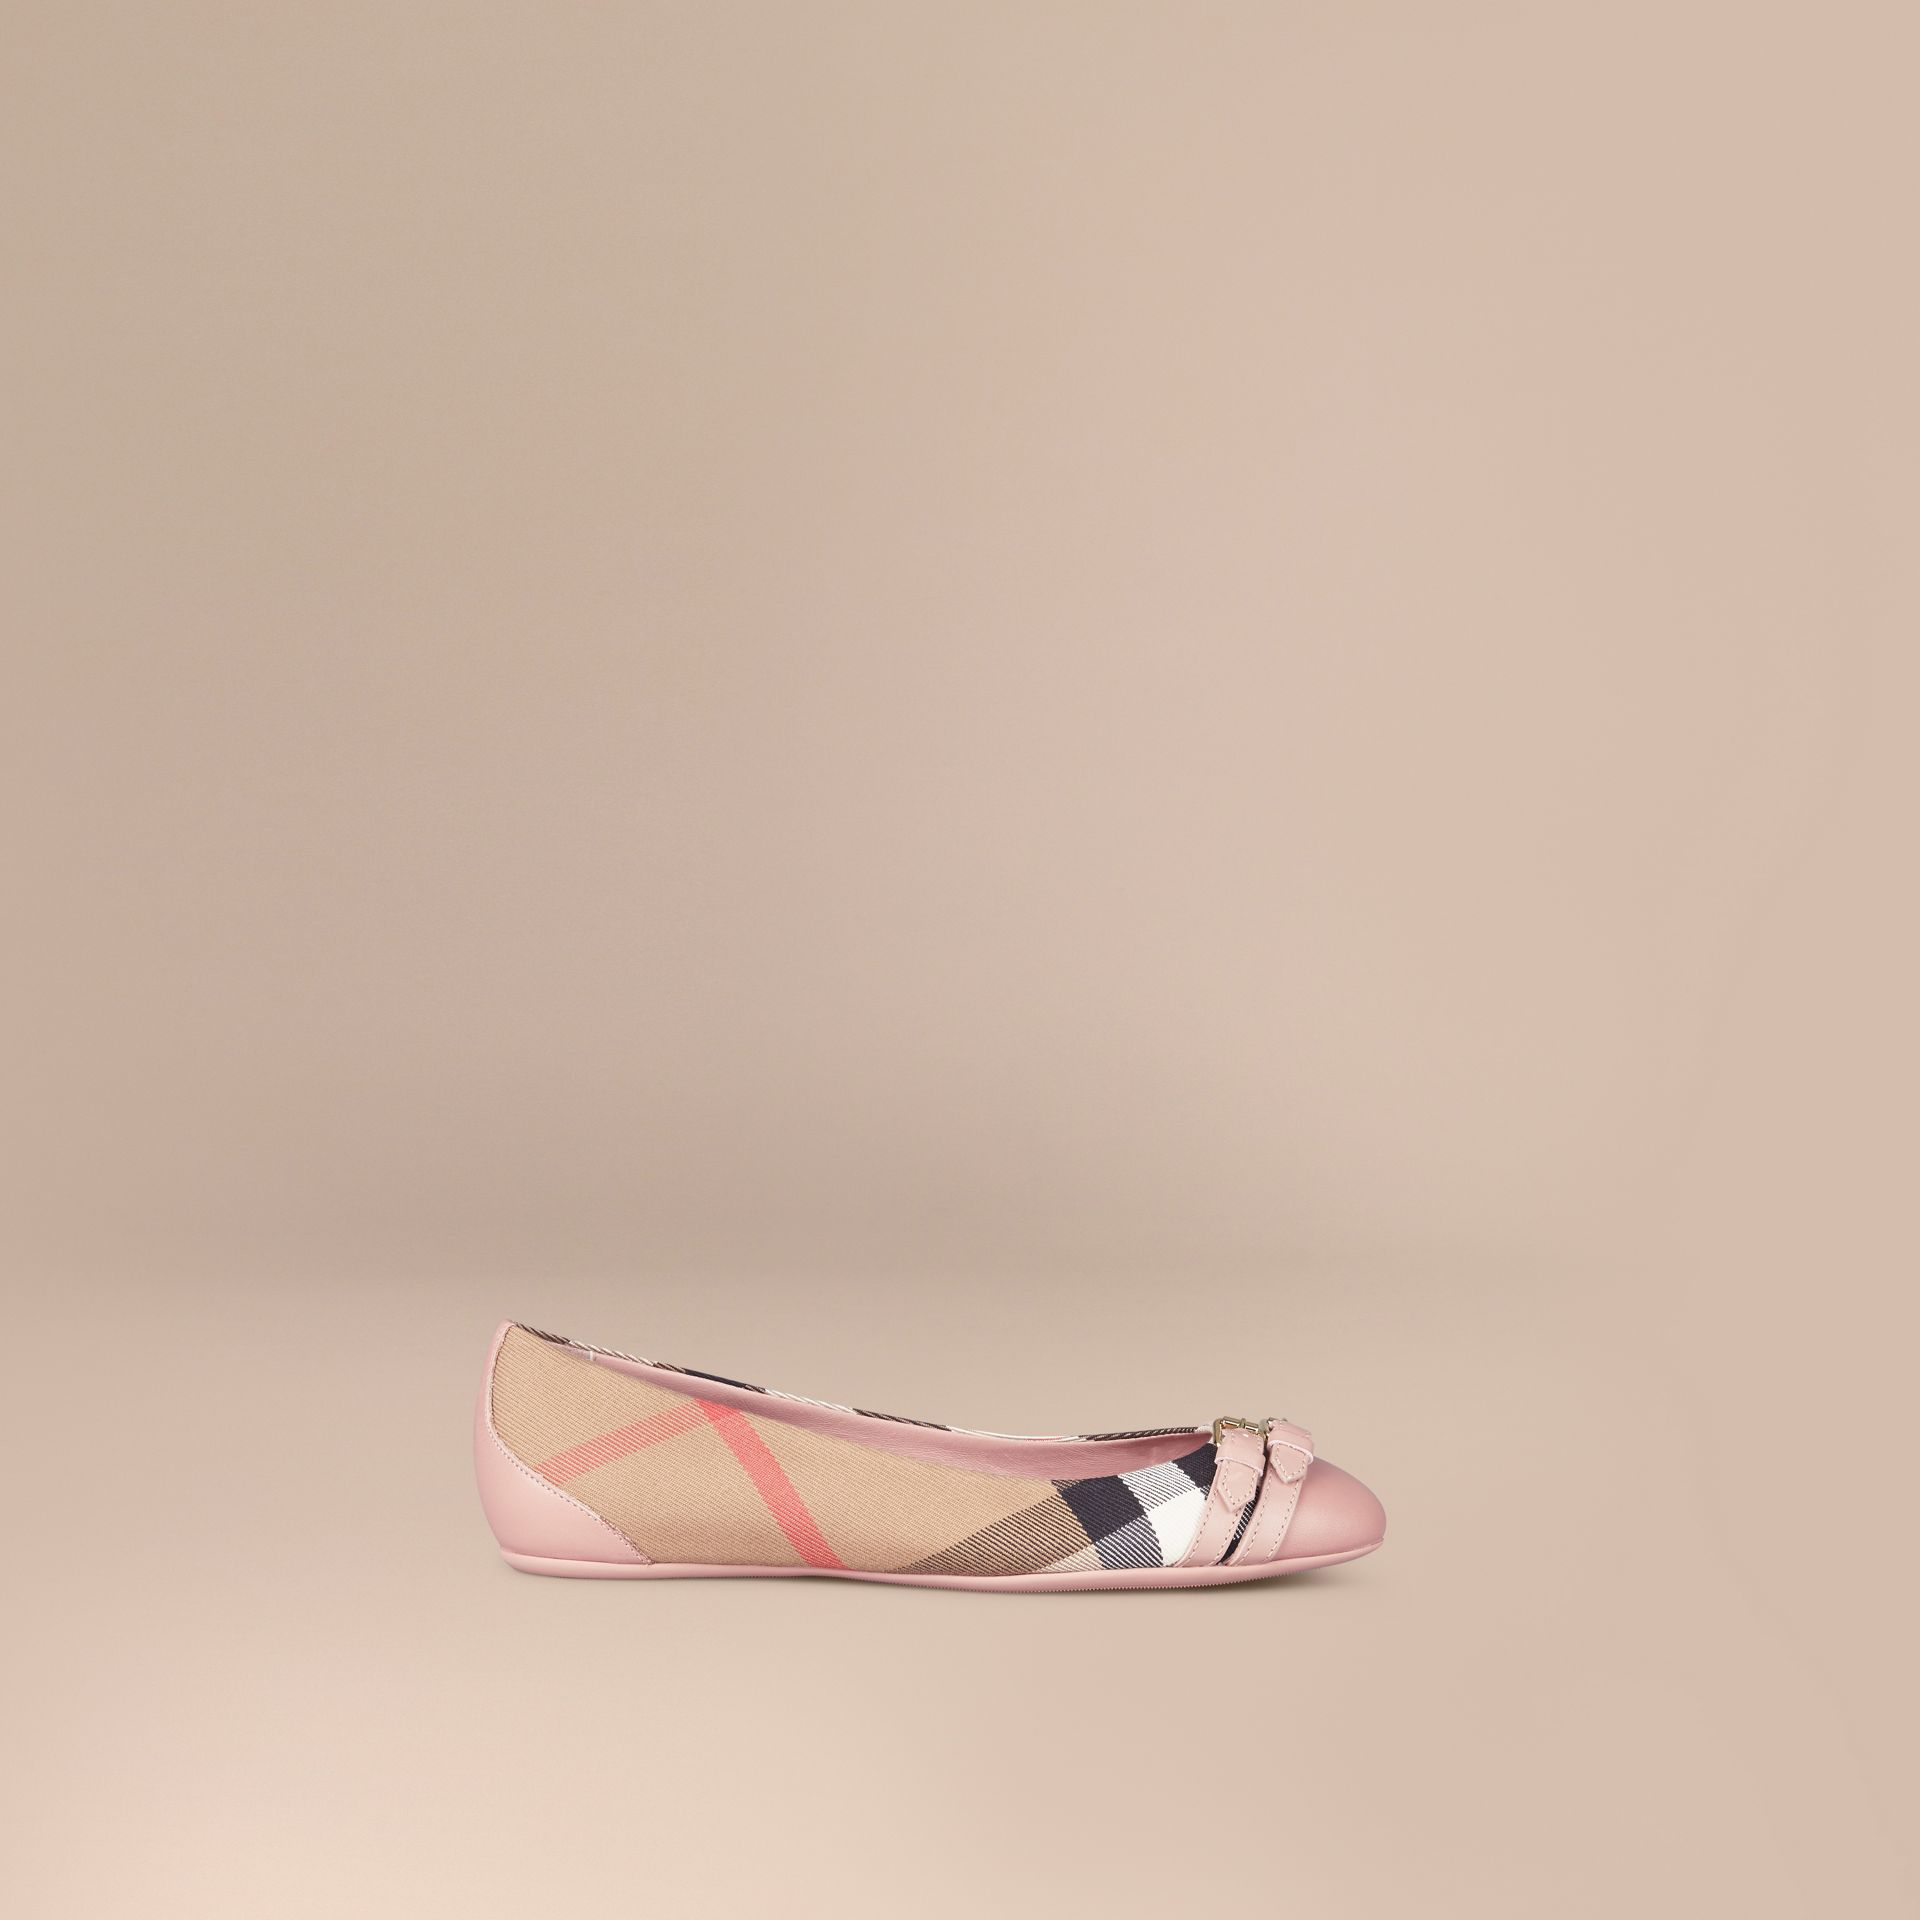 Belt Detail House Check Ballerinas in Nude Blush - Women | Burberry Singapore - gallery image 1